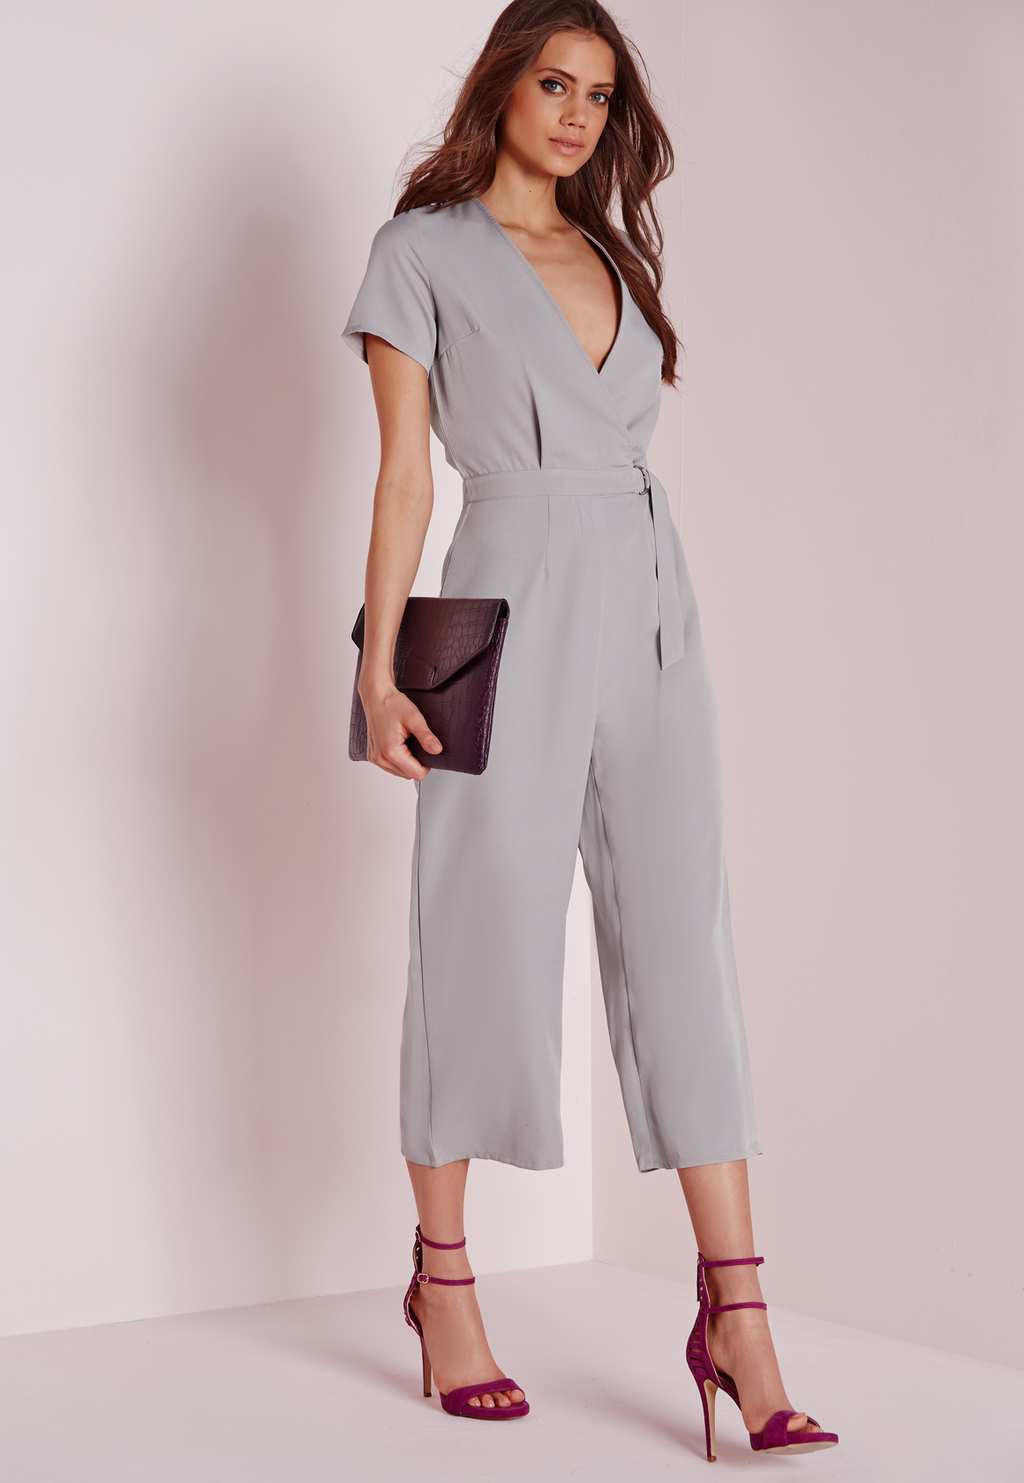 Tall Exclusive D Ring Culotte Jumpsuit Grey, Grey - neckline: low v-neck; pattern: plain; waist detail: belted waist/tie at waist/drawstring; predominant colour: light grey; occasions: evening; length: calf length; fit: body skimming; sleeve length: short sleeve; sleeve style: standard; style: jumpsuit; pattern type: fabric; texture group: other - light to midweight; season: a/w 2015; wardrobe: event